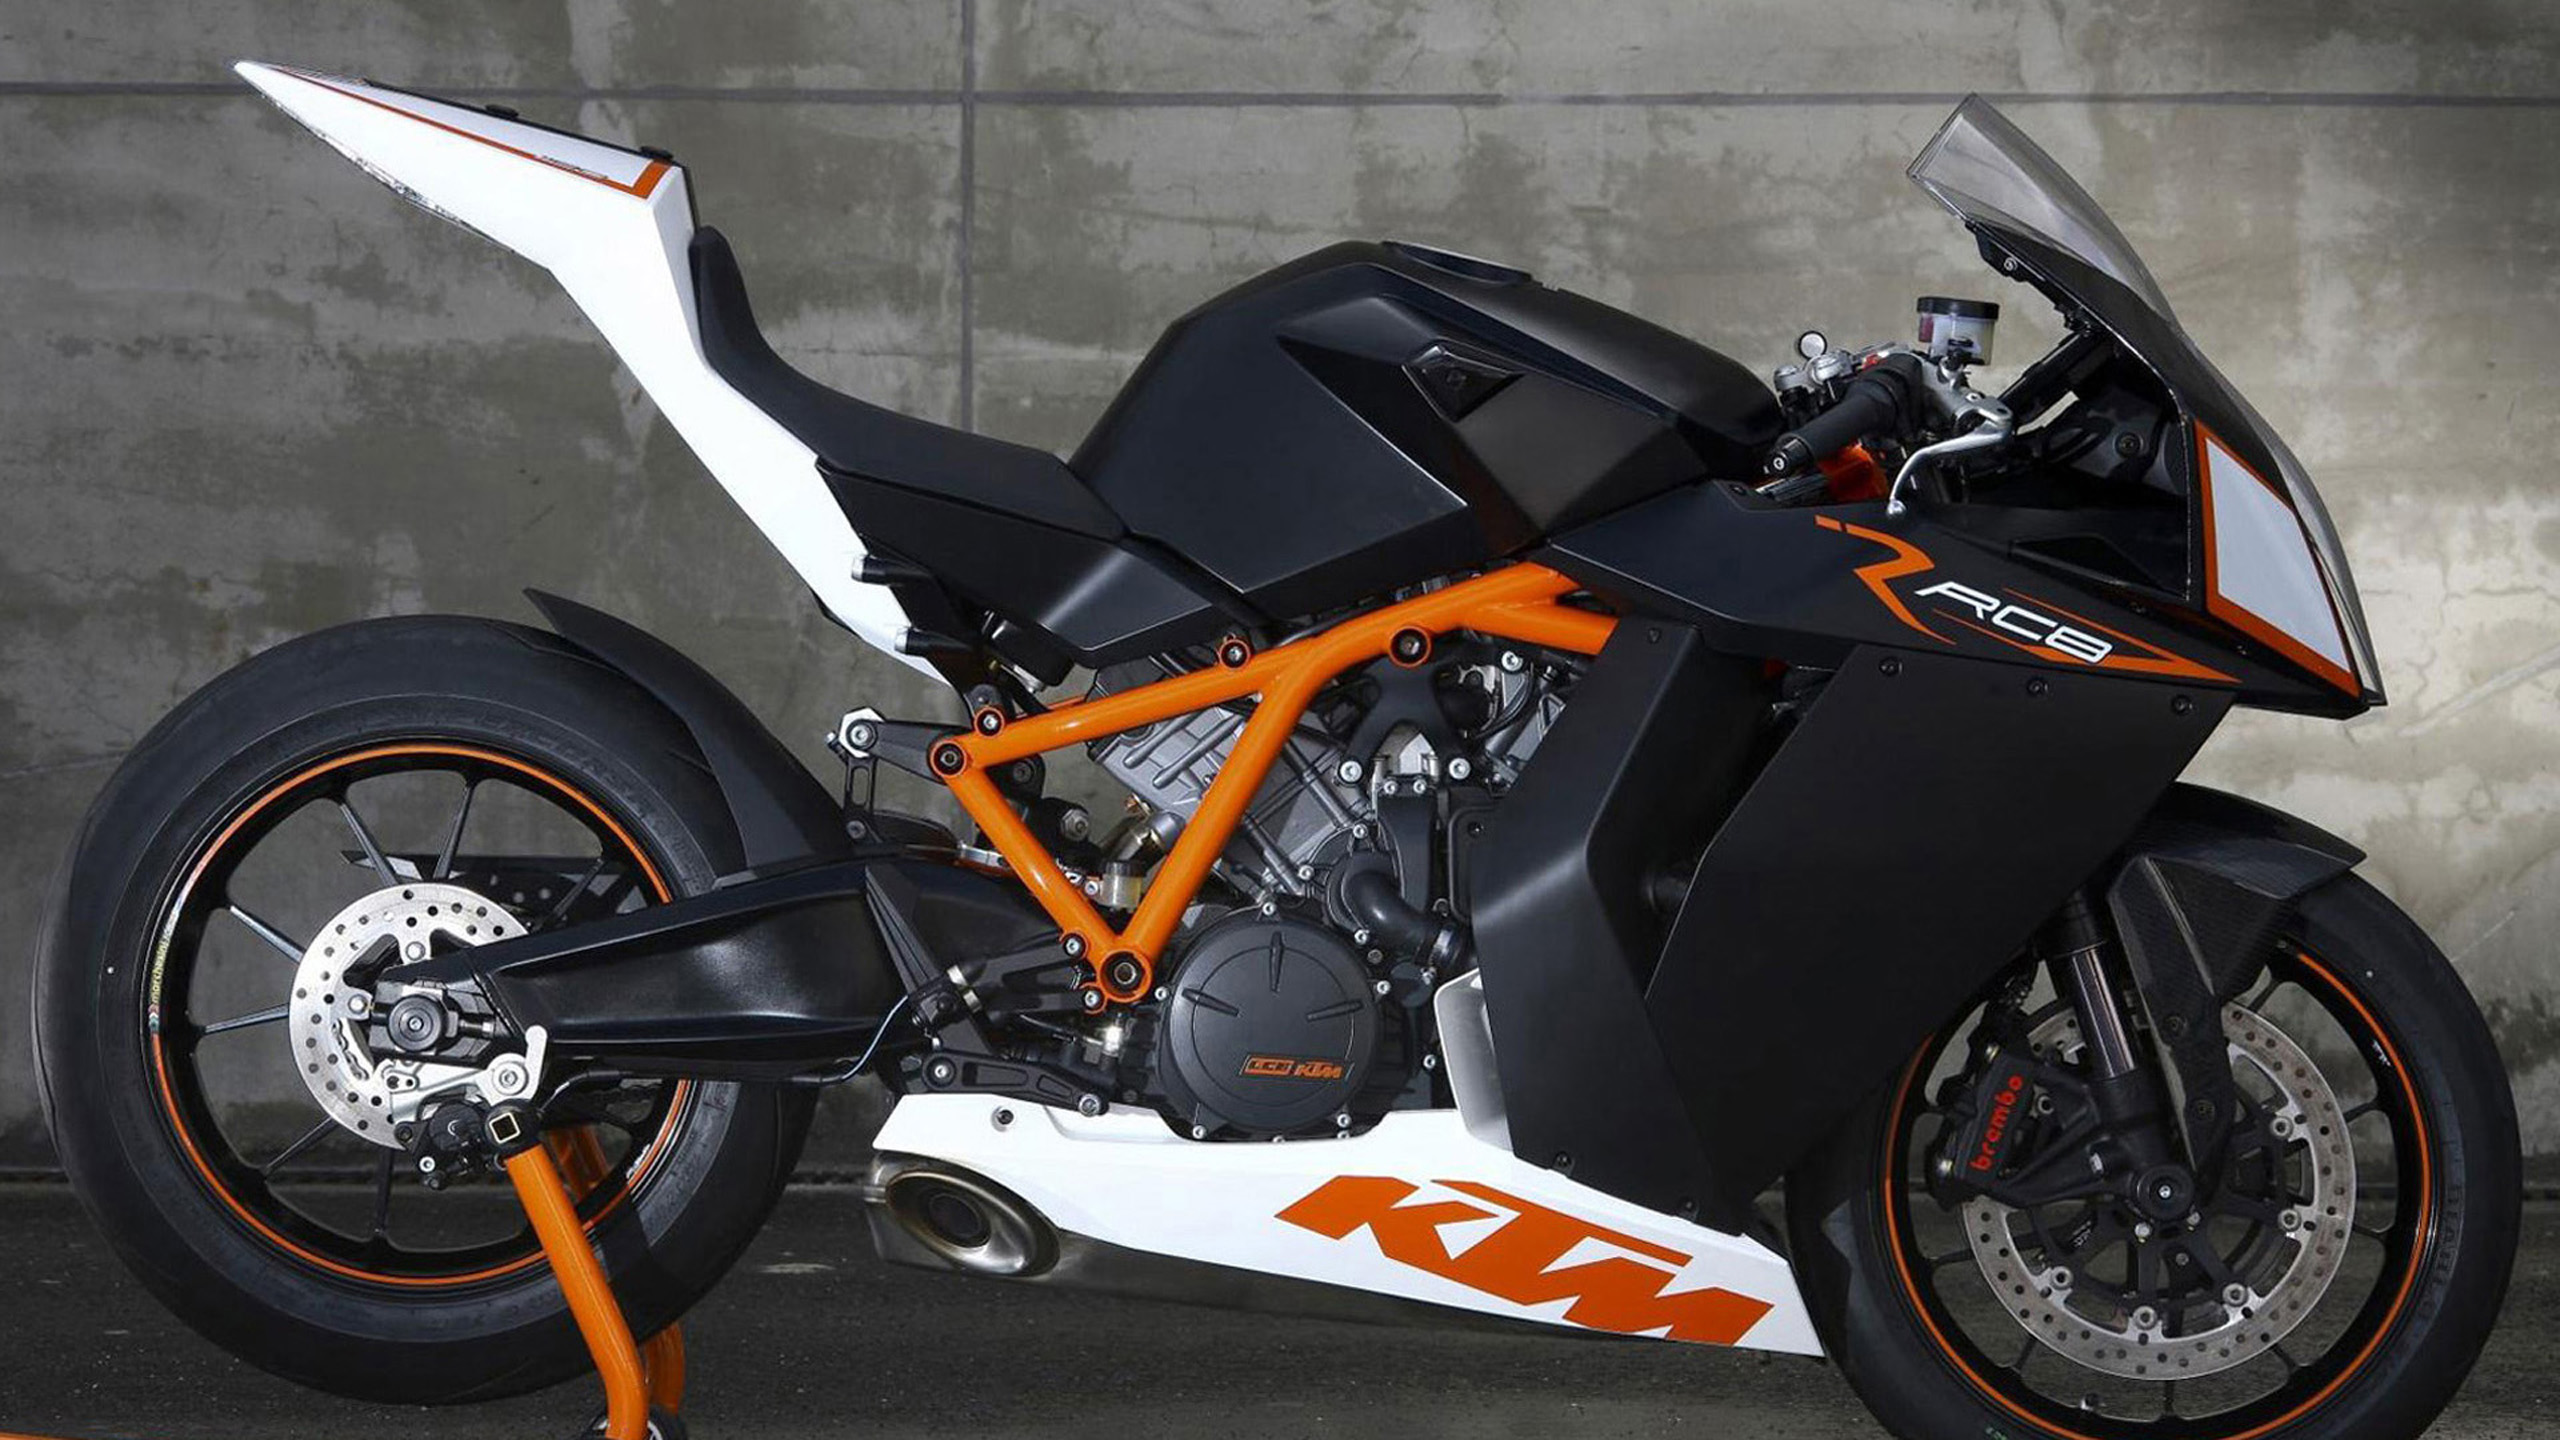 KTM logo wallpaper 4 HD Wallpaper Downloads 2560x1440